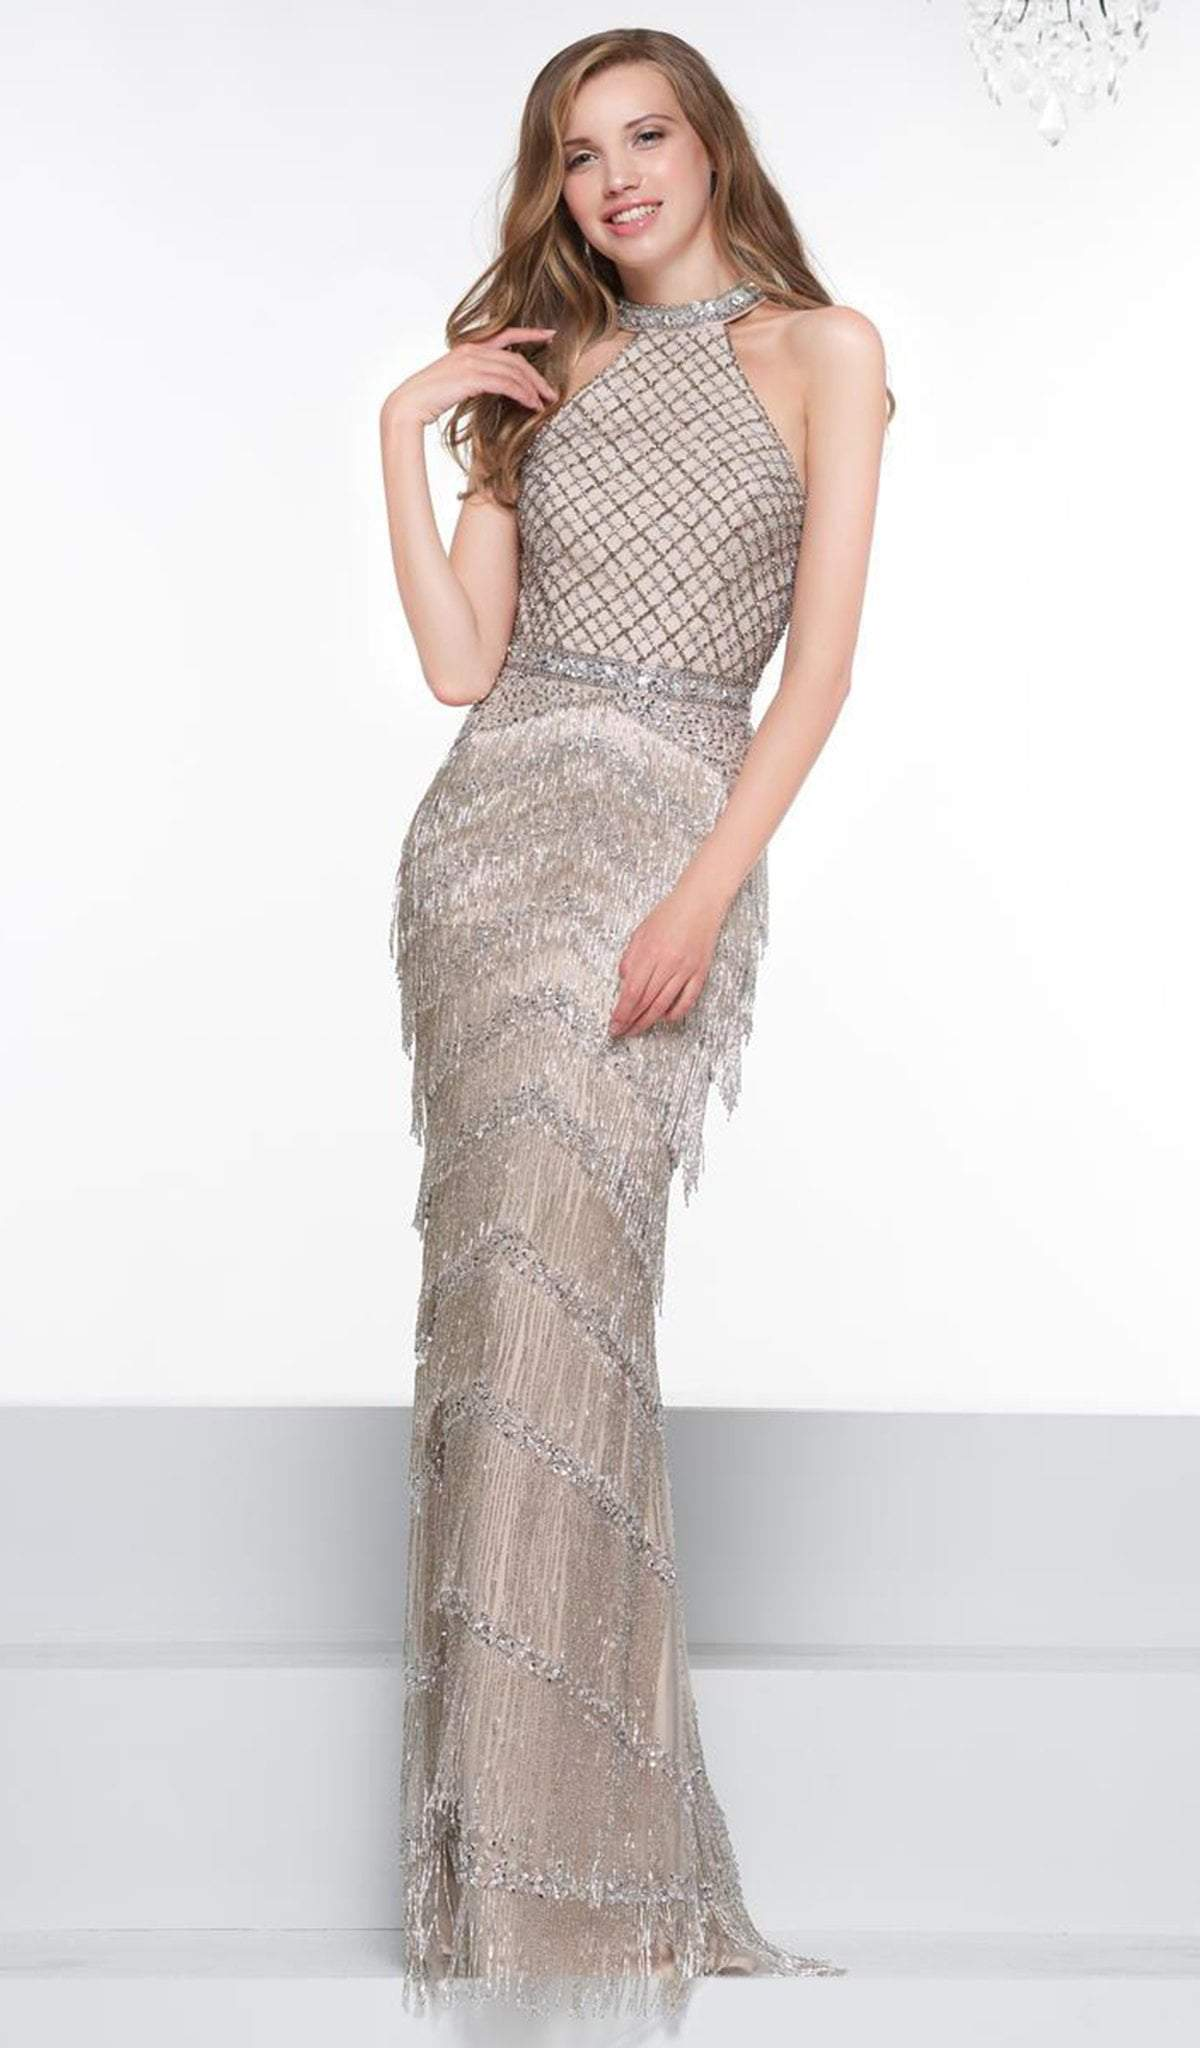 Colors Couture - J074 Beaded Halter Fringe Sheath Dress In Silver and Neutral